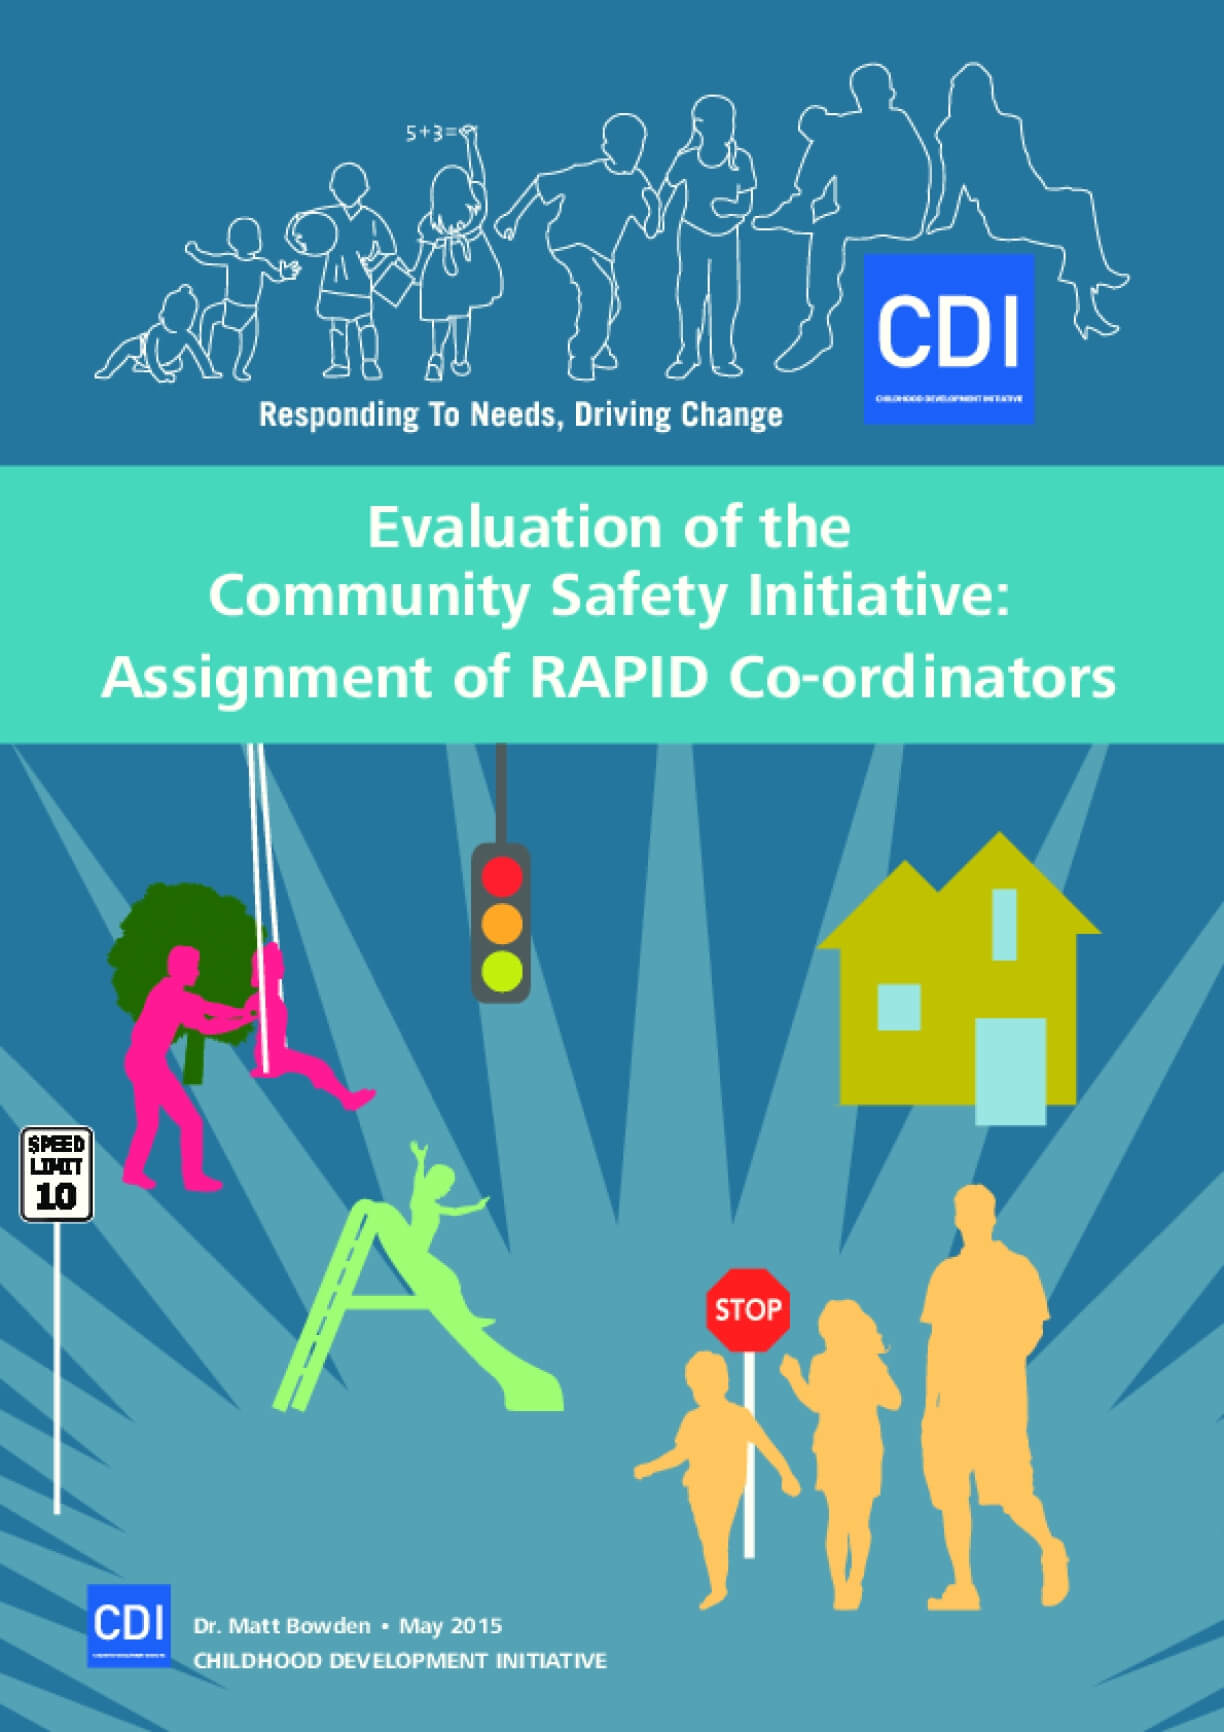 Evaluation of the Community Safety Initiative: Assignment of RAPID Co-ordinators